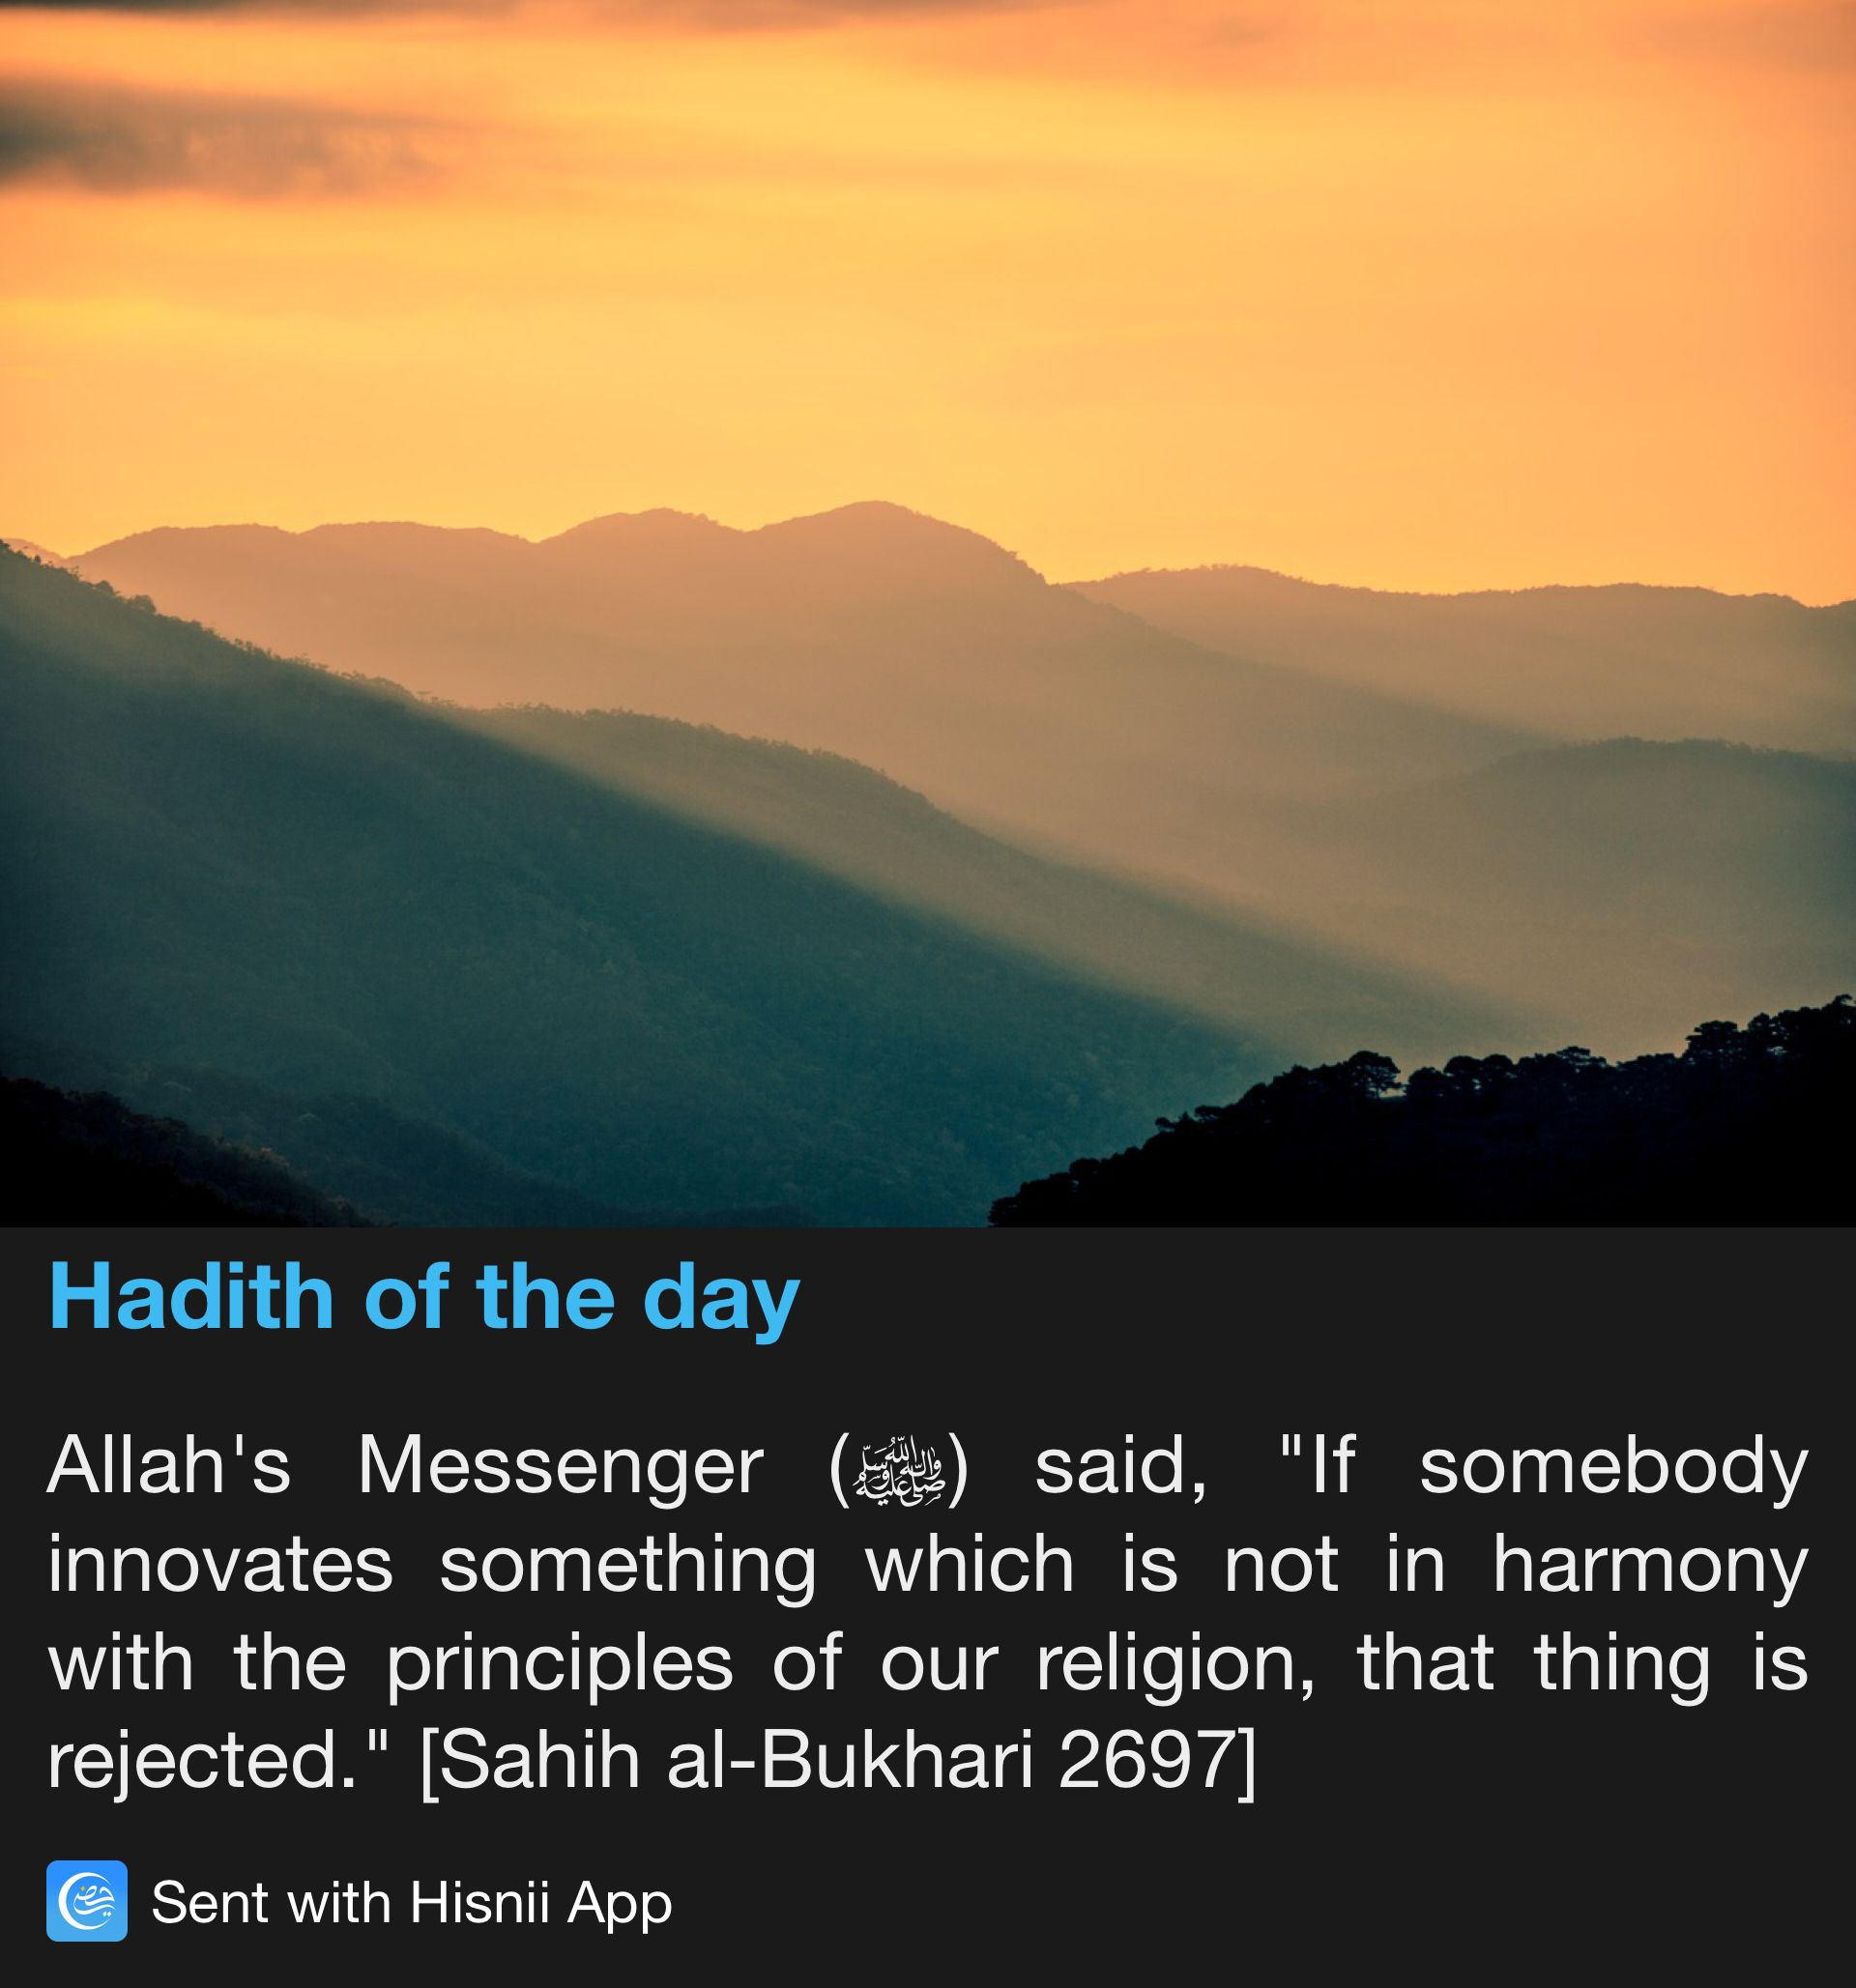 Pin By Urvashi Babbar On Hadith Hadith Of The Day Hadith Quotes Islamic Inspirational Quotes